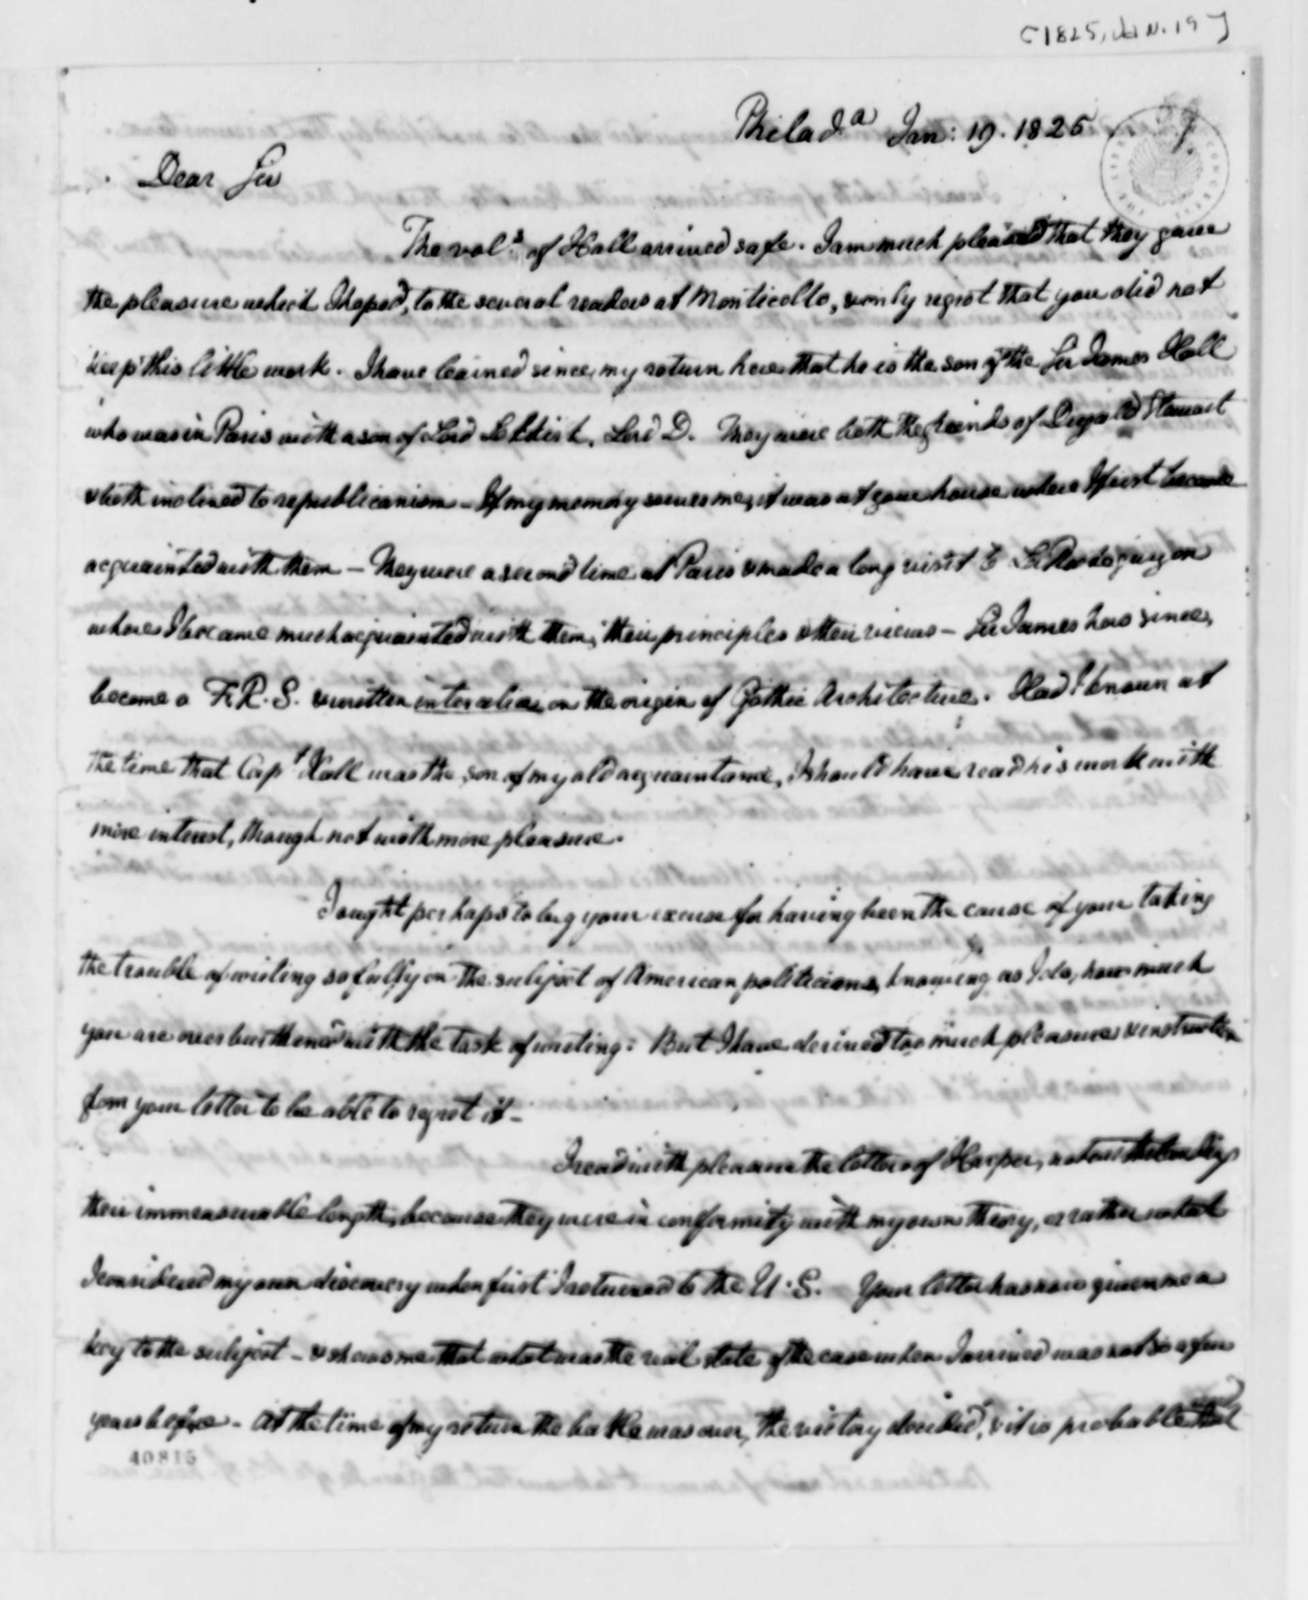 William Short to Thomas Jefferson, January 19, 1825